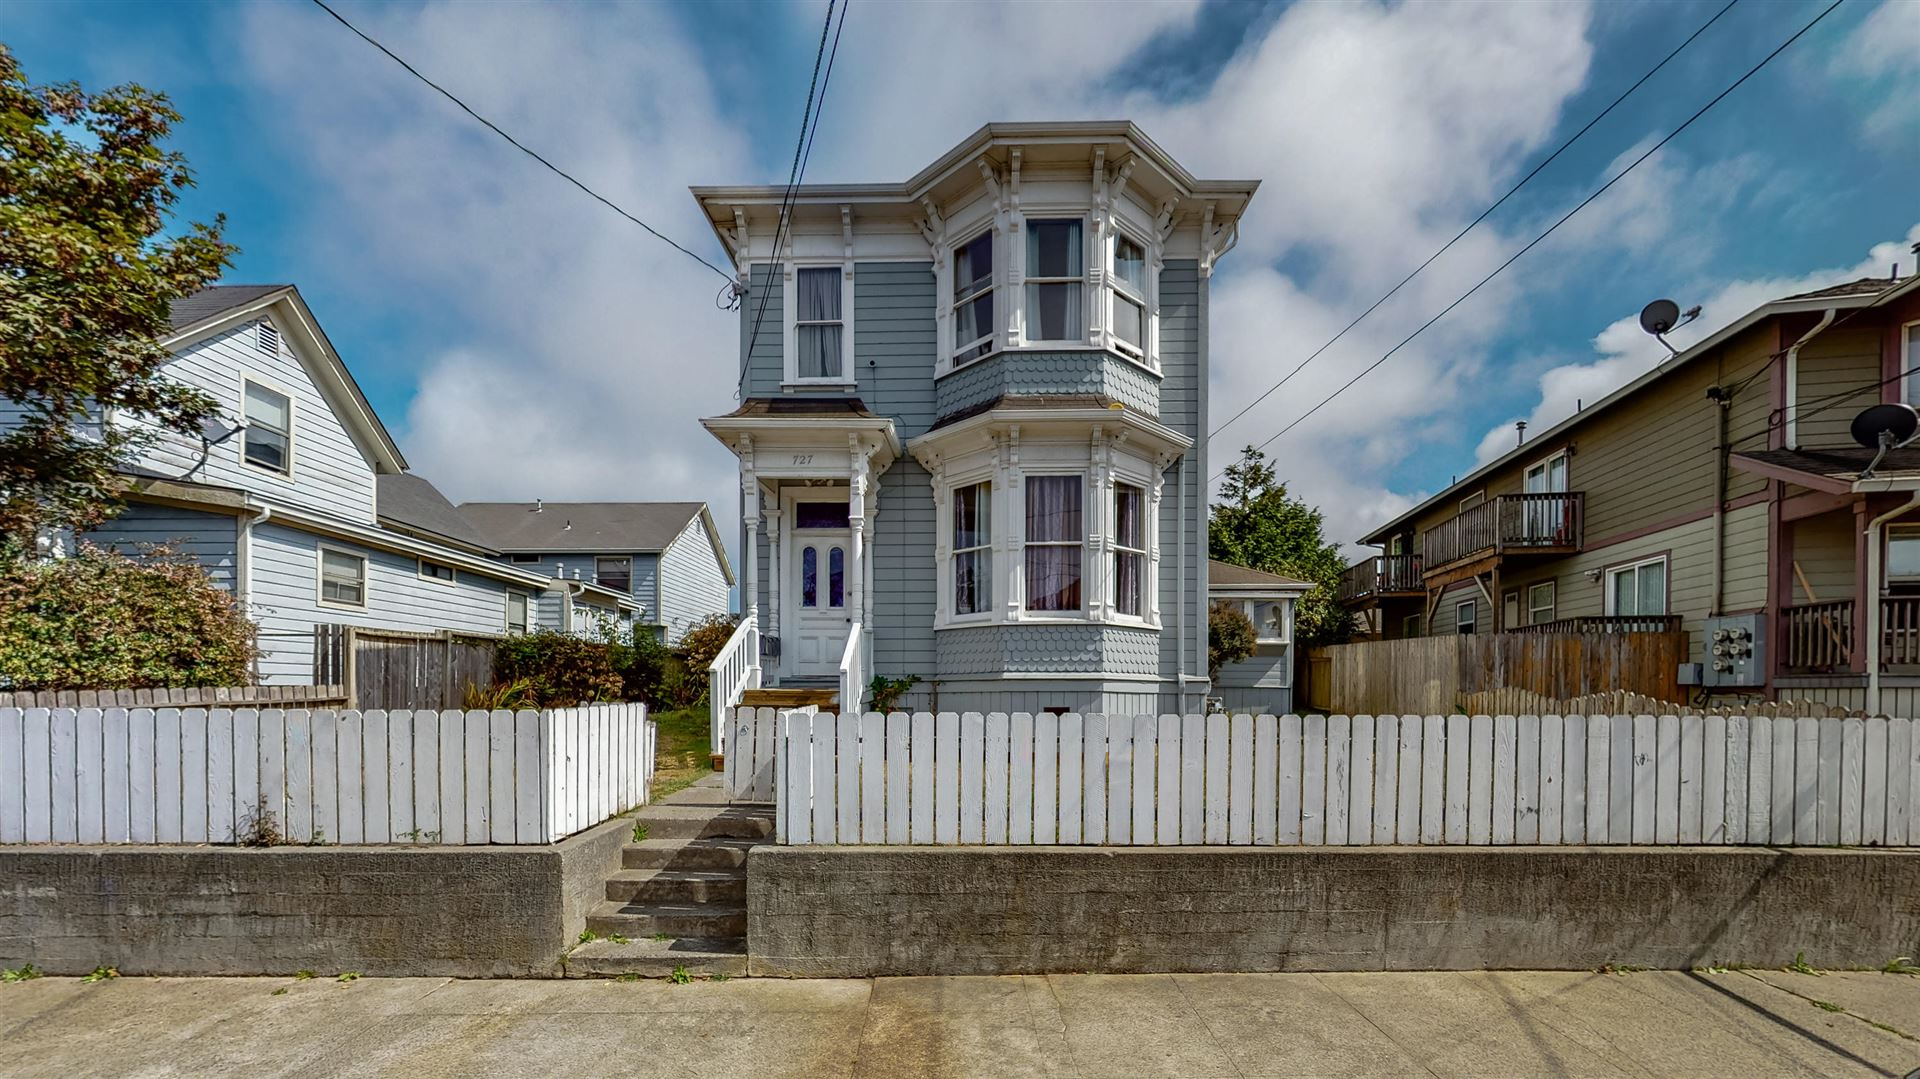 727 California Street, Eureka, CA 95501 - MLS#: 257573